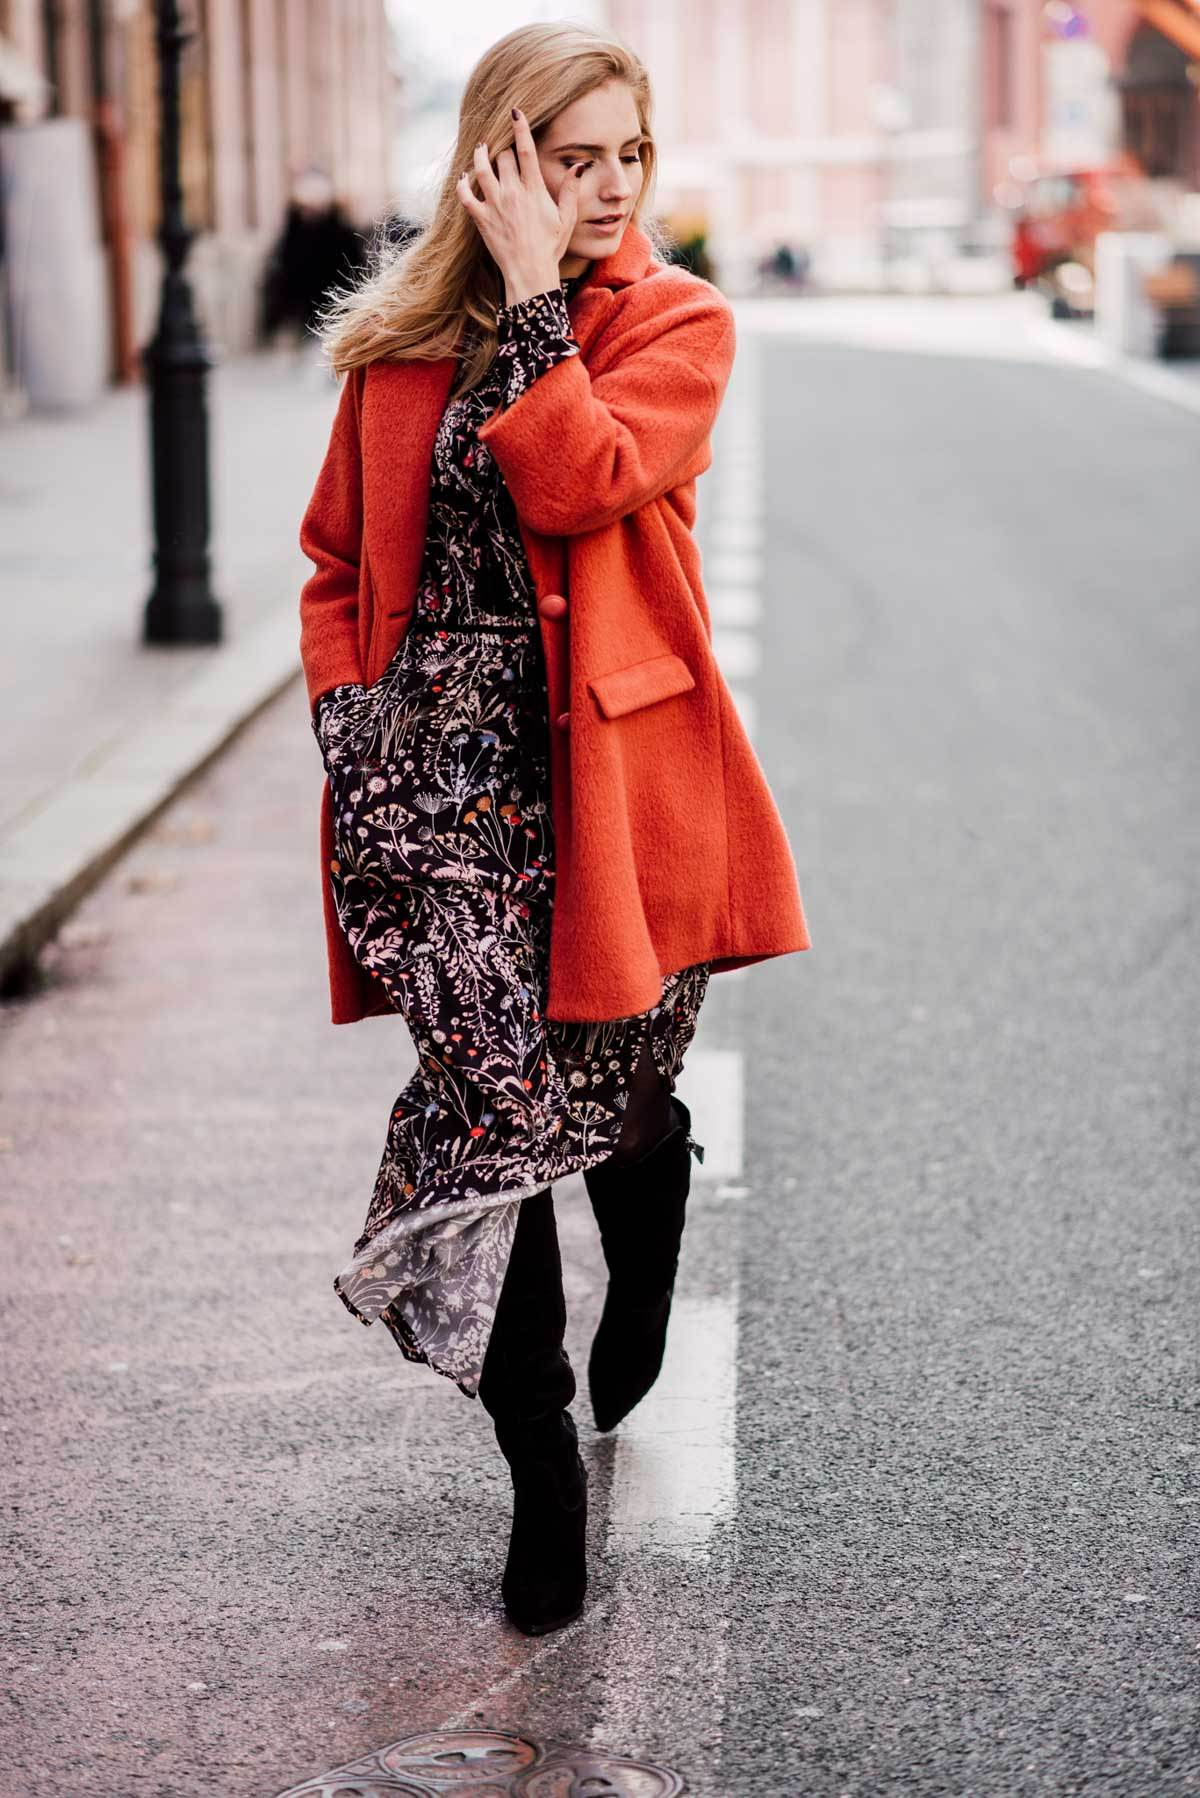 boho chic autumn outfit